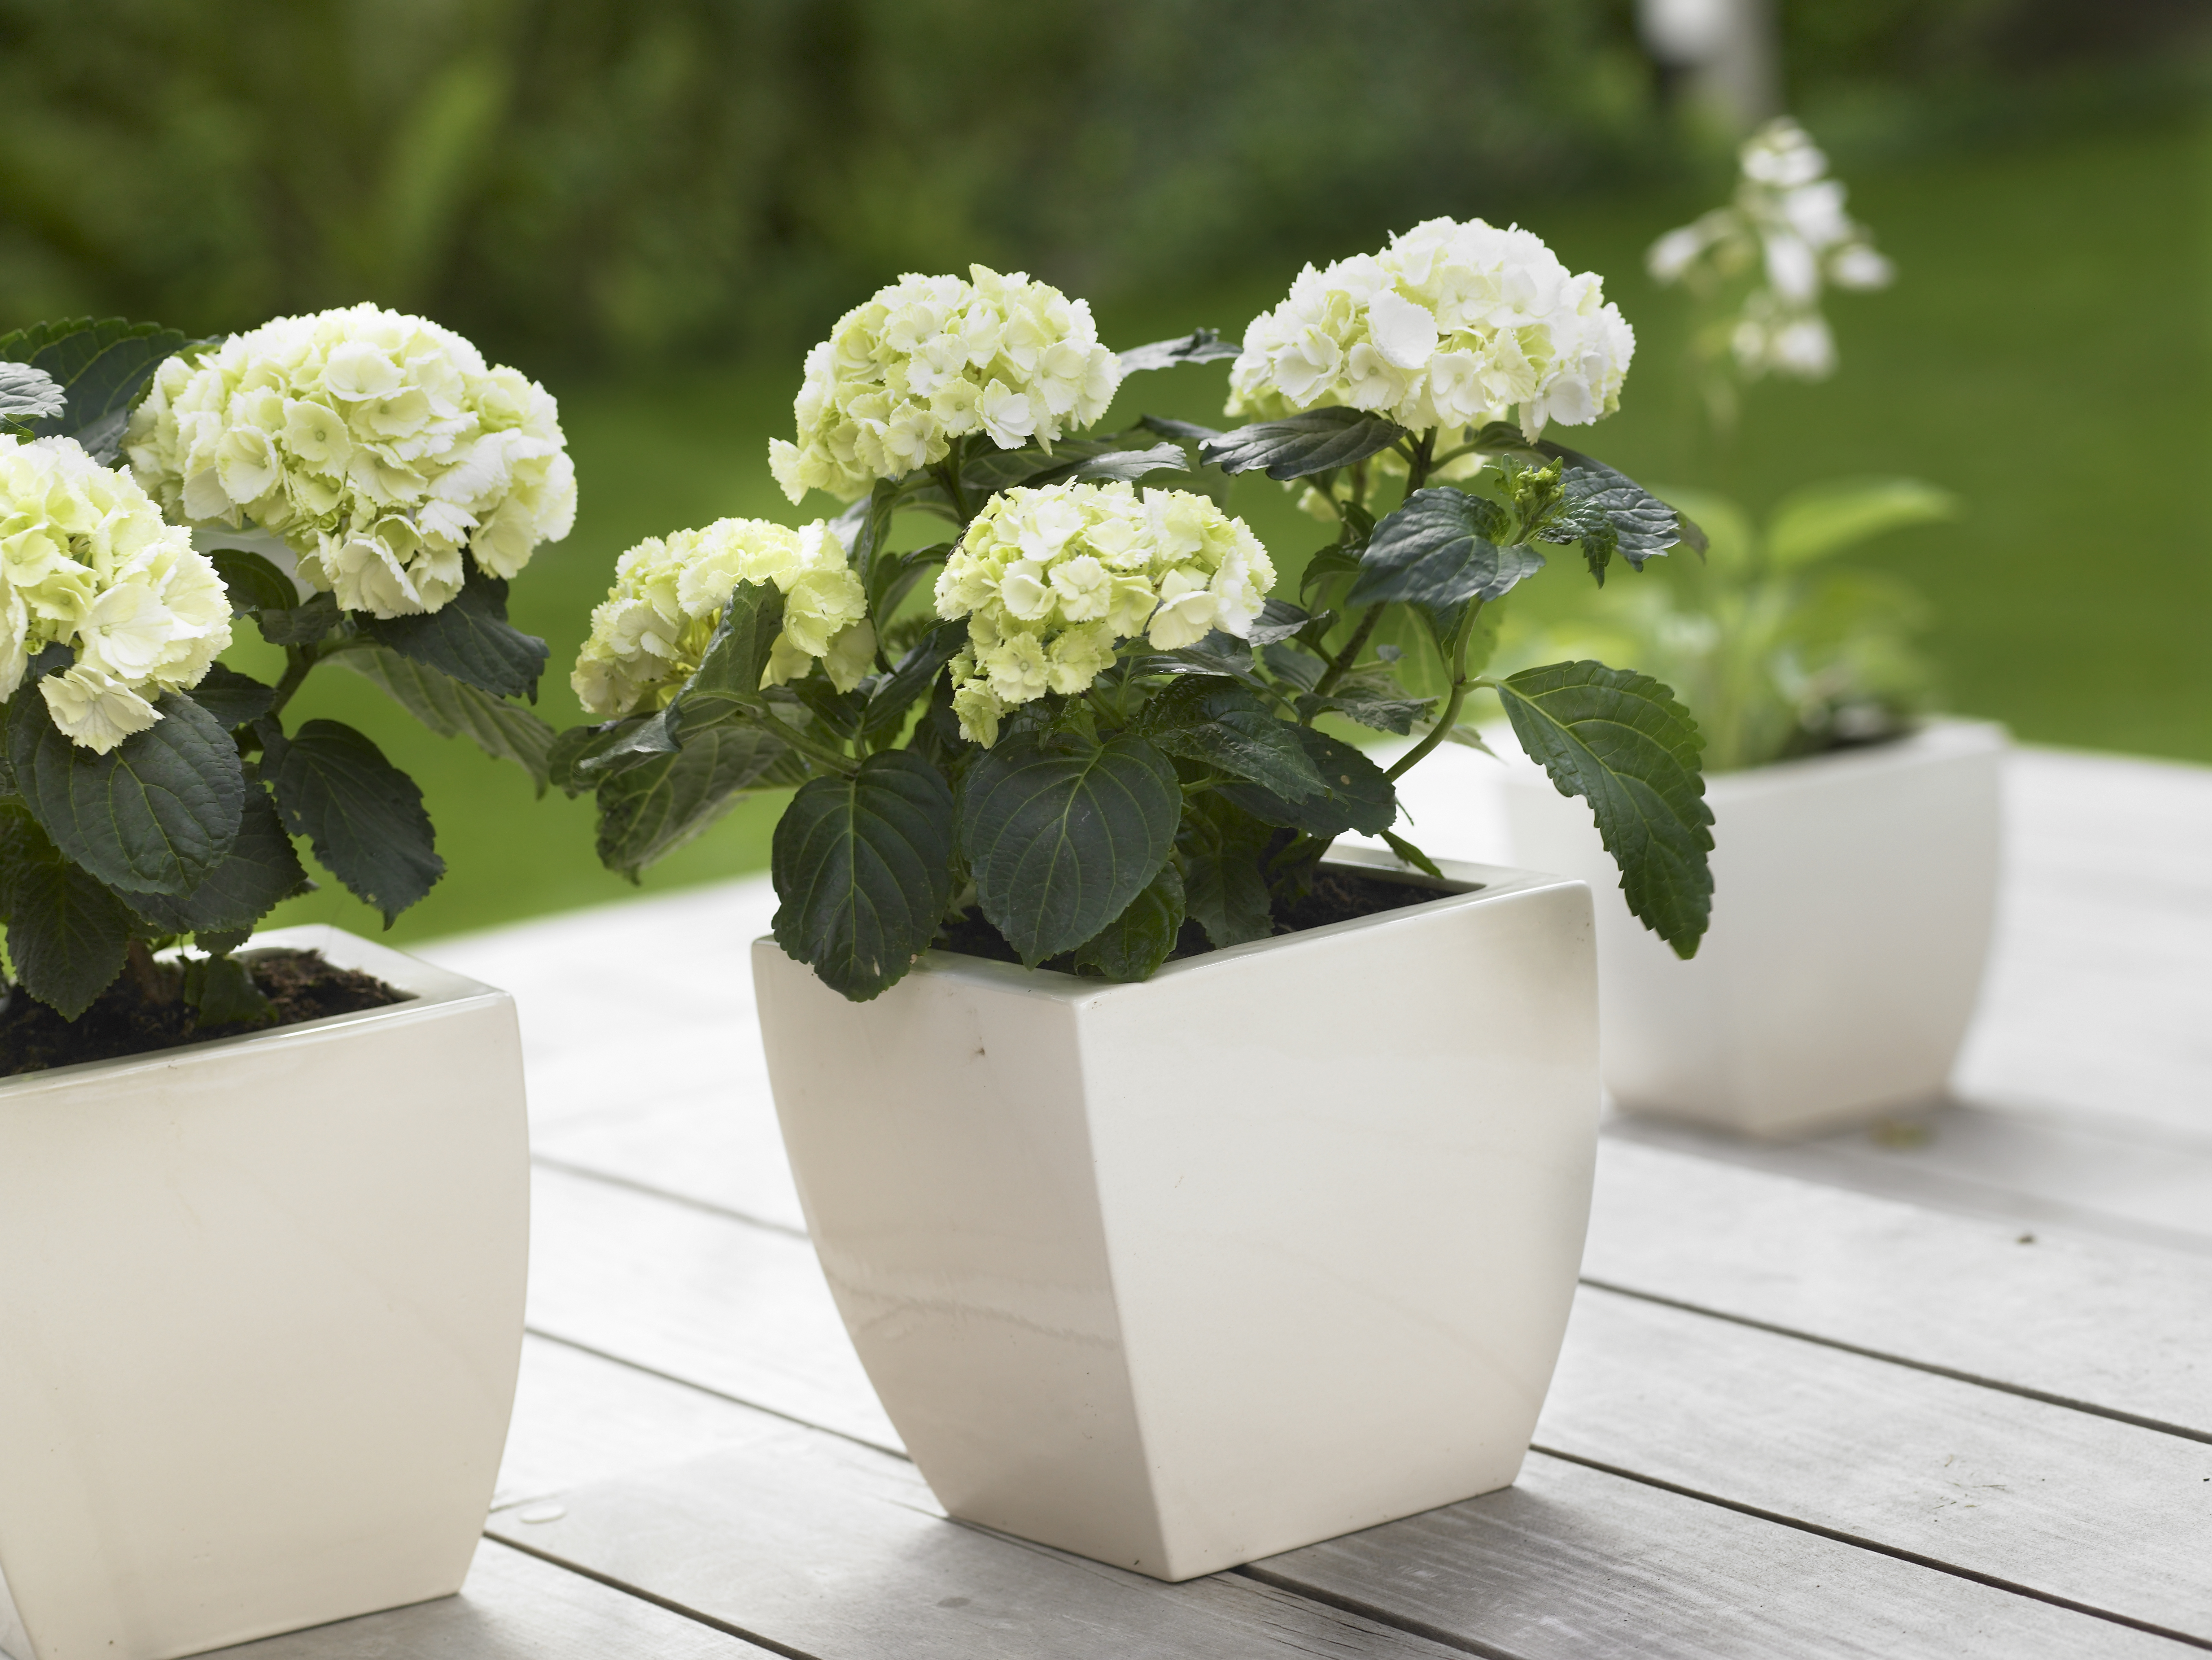 planter hortensia gallery of hortensia plante with planter hortensia bouture prte planter with. Black Bedroom Furniture Sets. Home Design Ideas